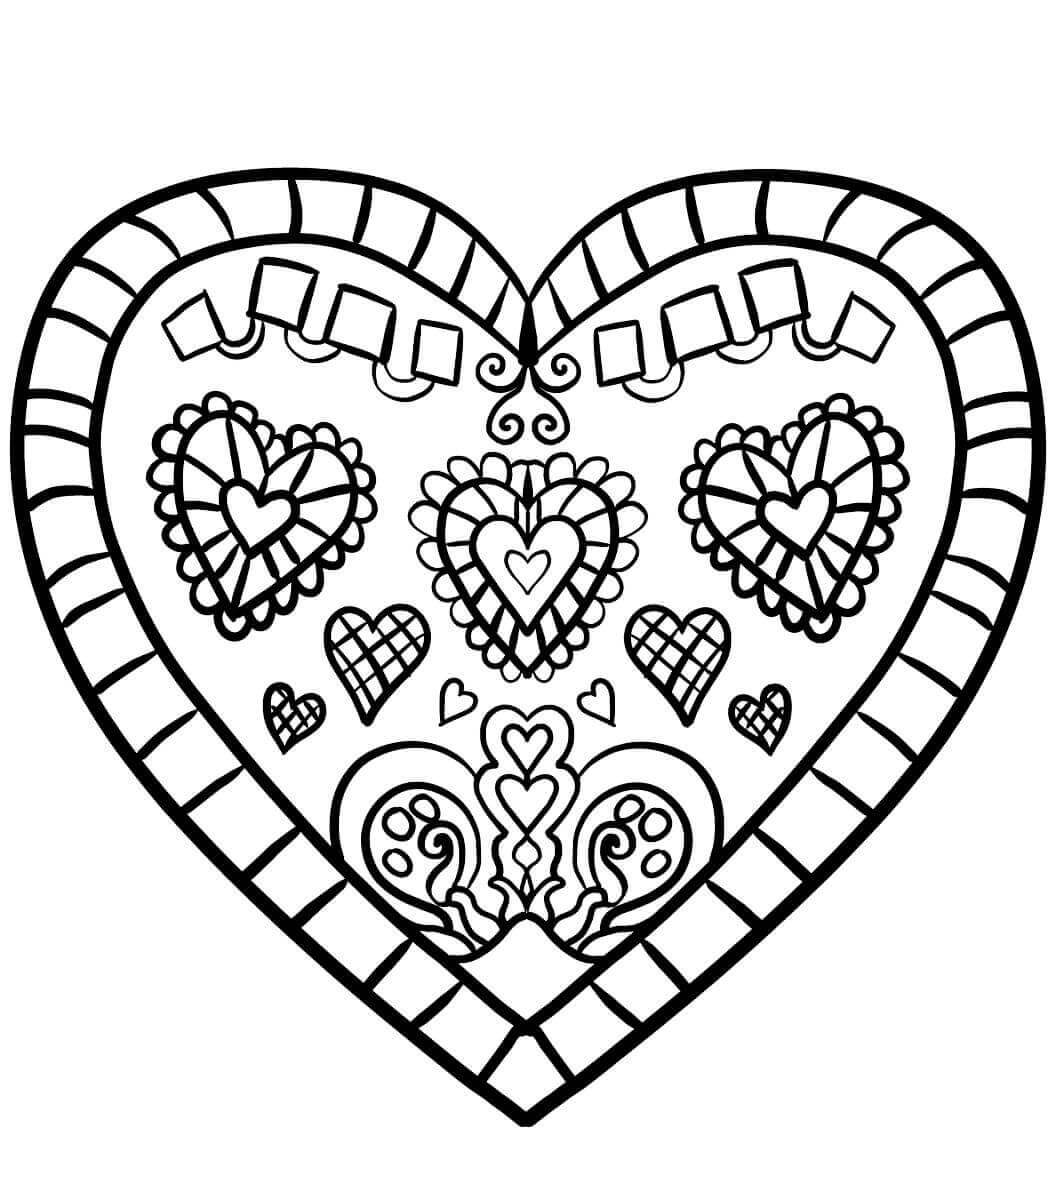 heart color page heart coloring pages the sun flower pages page color heart